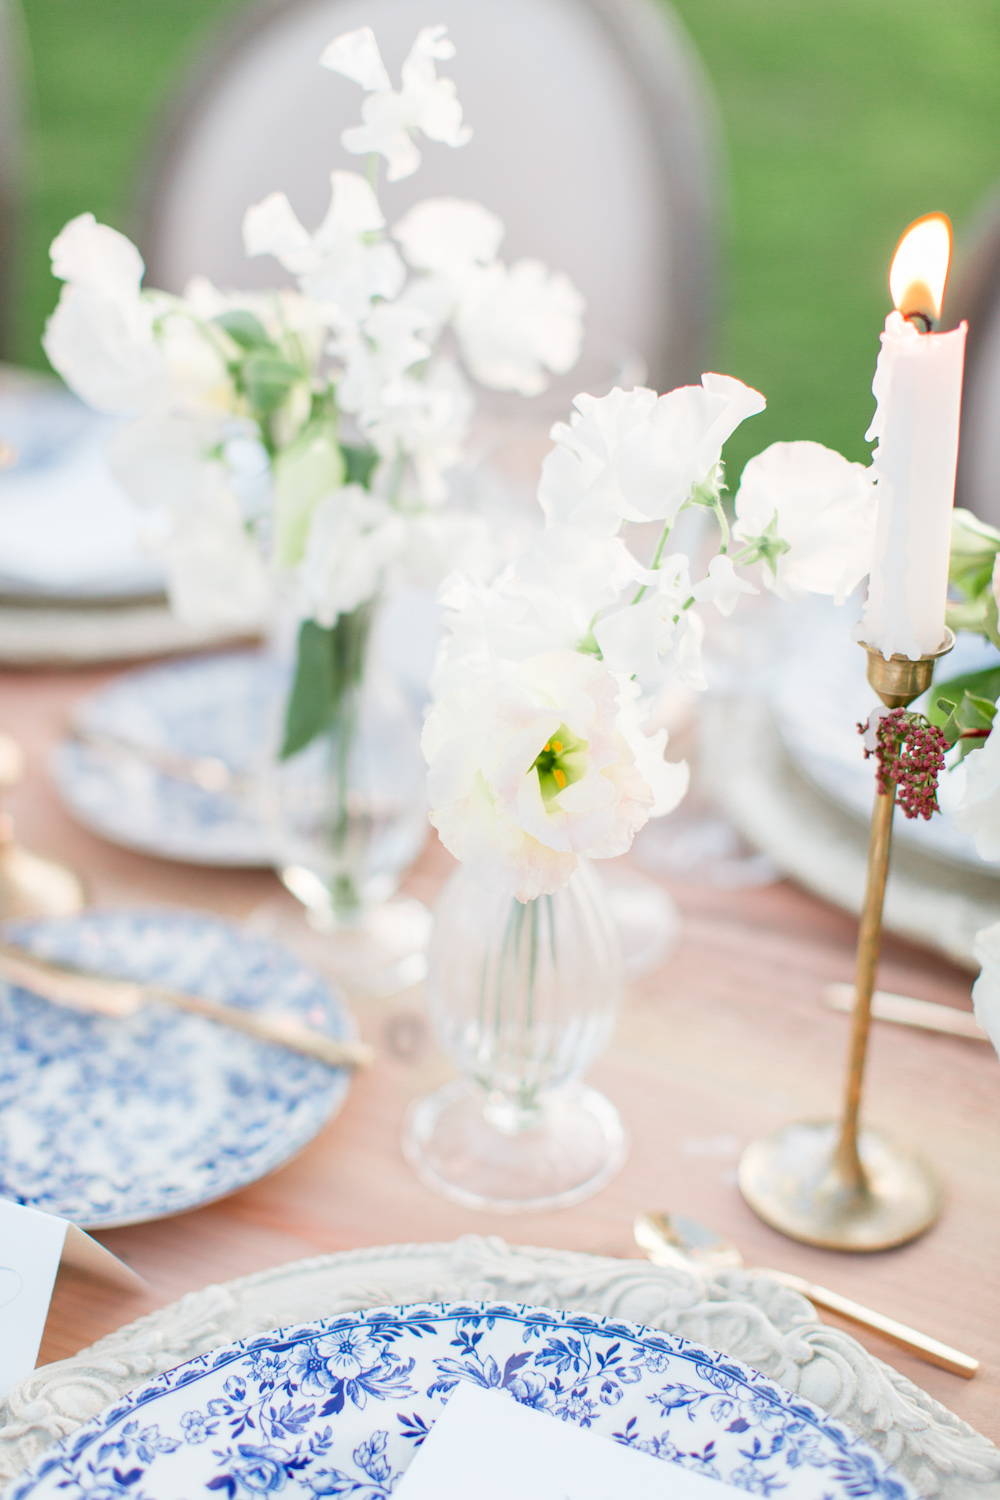 White sweet pea and blue chinoiserie place setting | Rancho Valencia Weddings | Rancho Santa Fe | Compass Floral | Wedding Florist in San Diego and Southern California | Cavin Elizabeth Photography